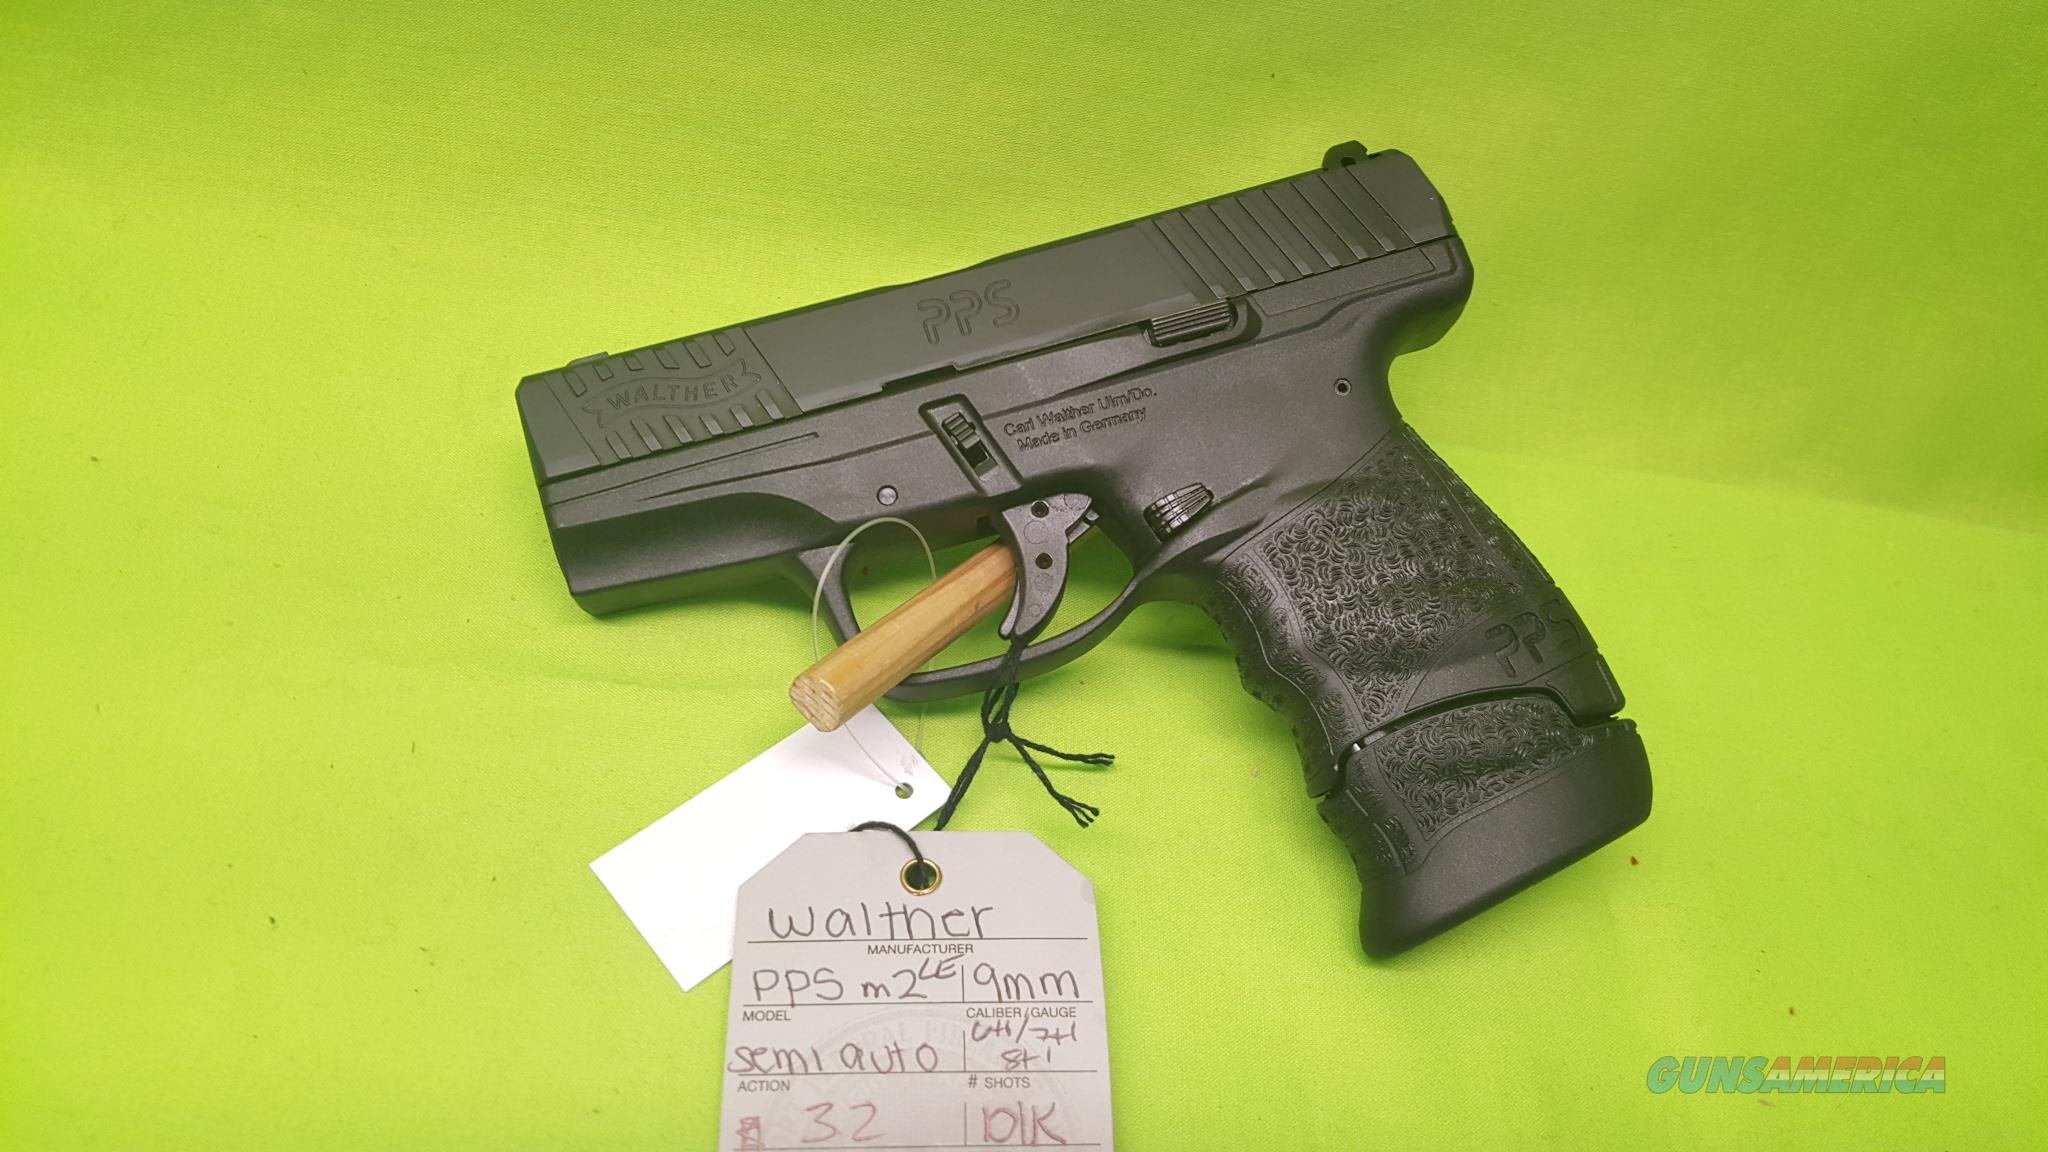 WALTHER PPS M2 LE 9MM 6/7/8RD POLICE PISTOL SLIM  Guns > Pistols > Walther Pistols > Post WWII > PPS